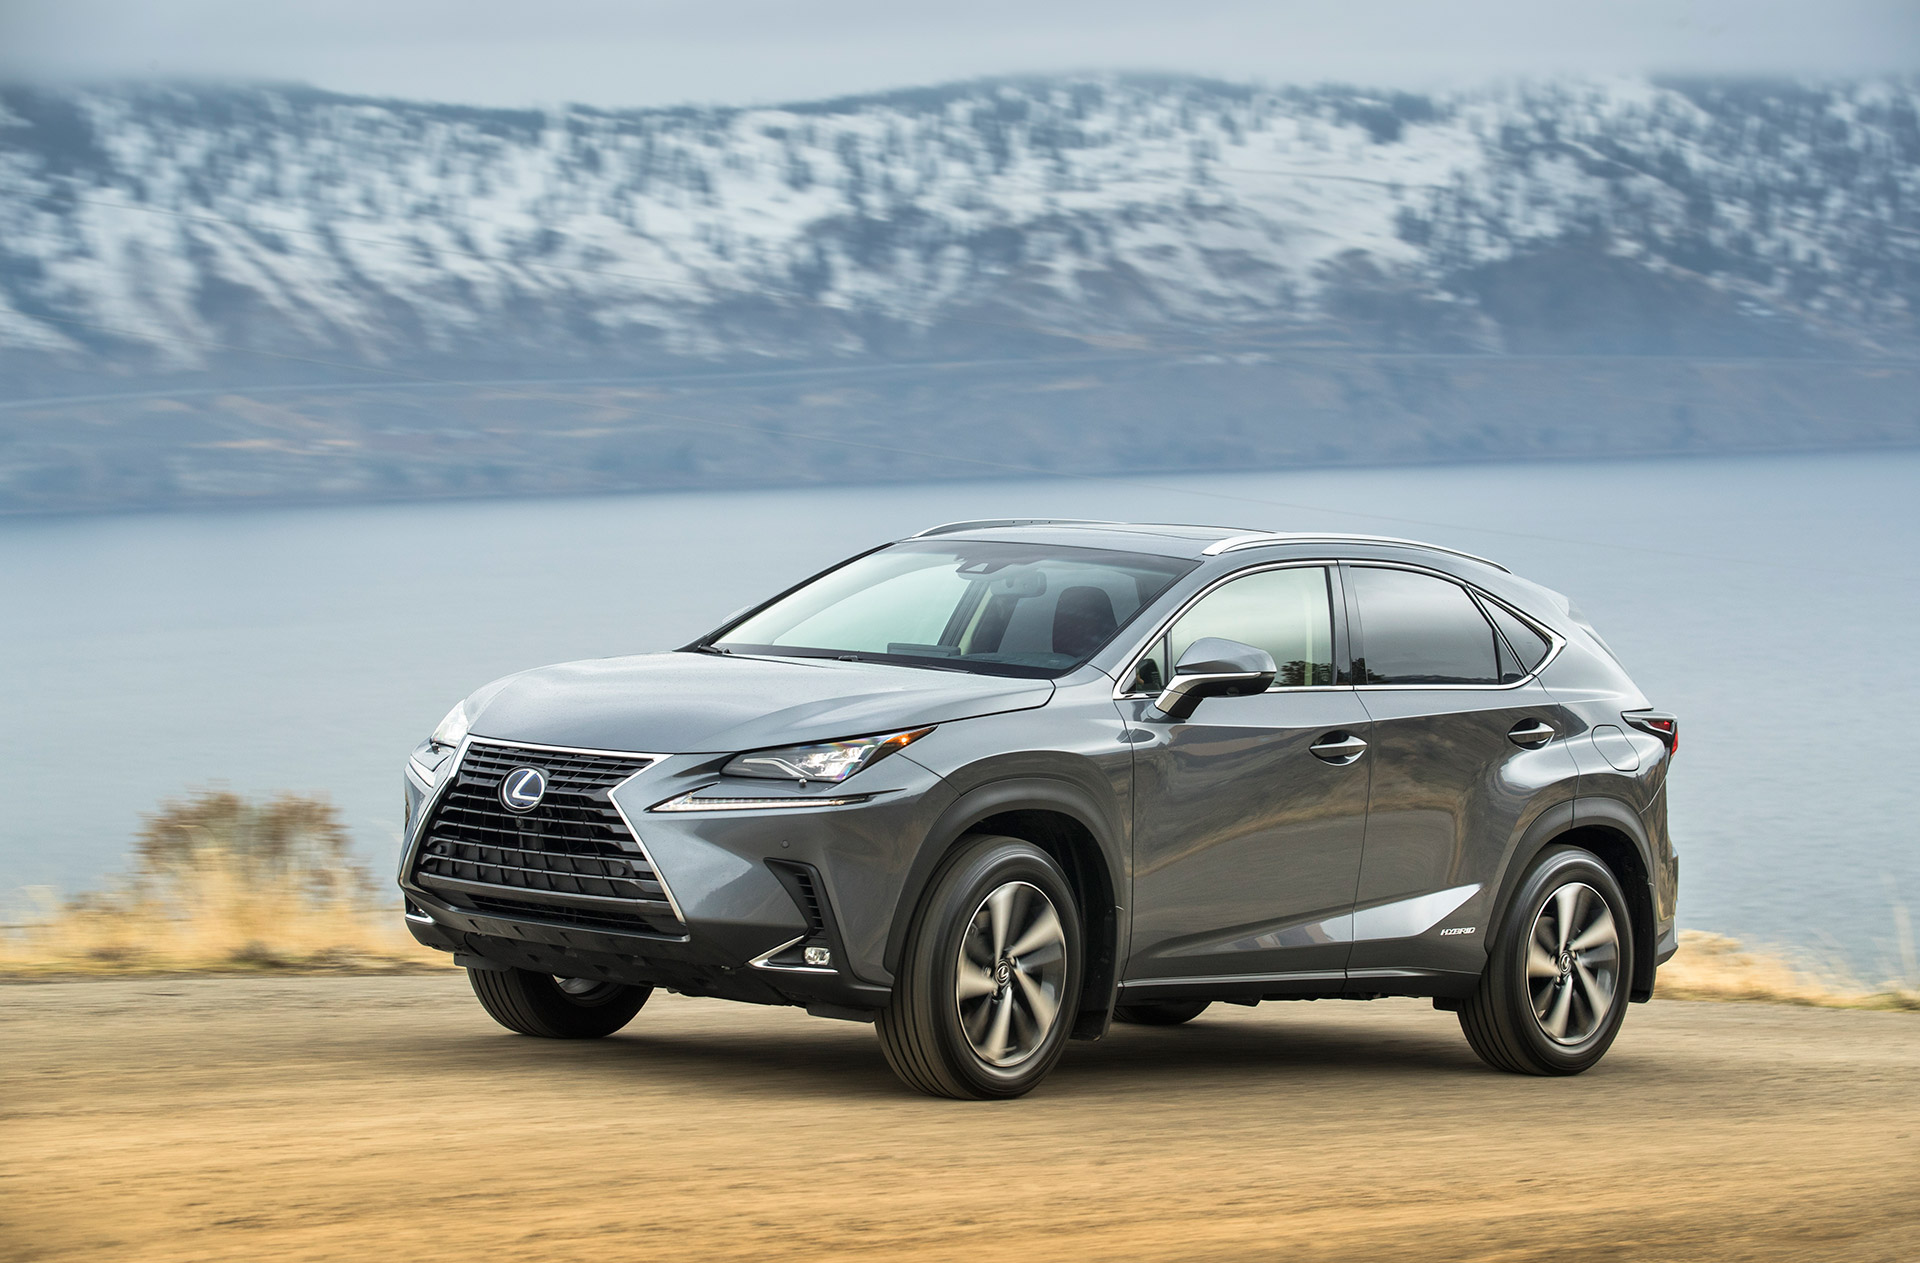 Toyota to begin producing the popular Lexus NX compact luxury SUV in CanadaToyota Motor Manufacturing Canada chosen to build yet another top seller starting in 2022 - Image 1